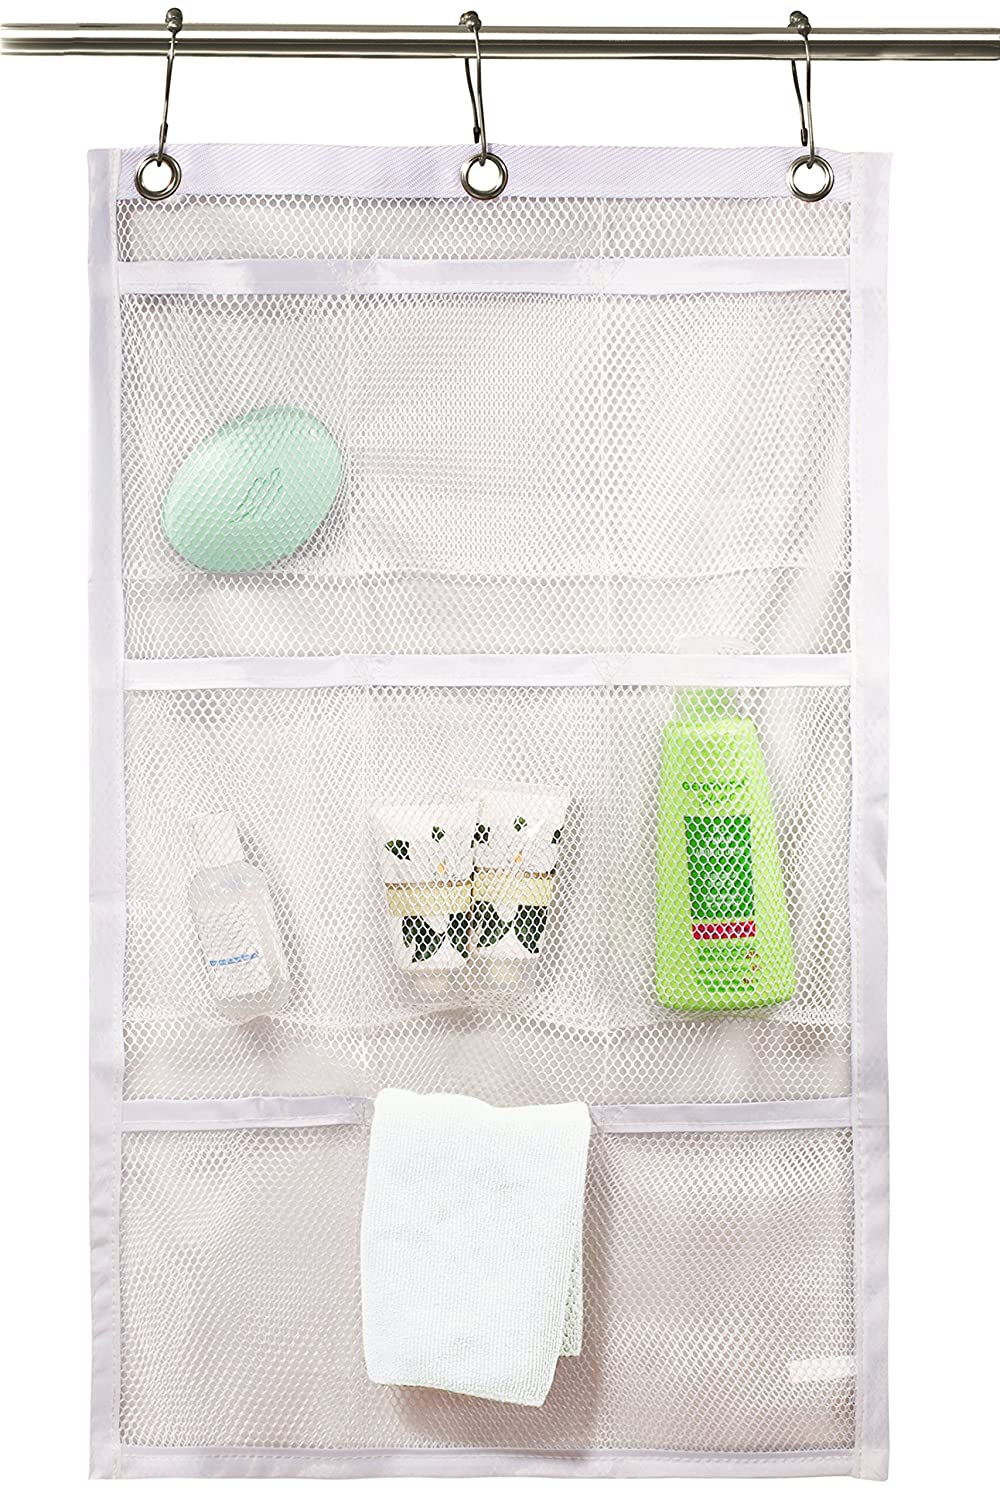 Shower Curtain Bathroom Organizer -9 Pockets- Perfect for Organizing Your Home Bath. Organize Your Toiletries and kid's Toys in Nine Durable Deep Mesh Pockets. Hang on Existing Shower Curtain Rings. Handy Laundry 5098